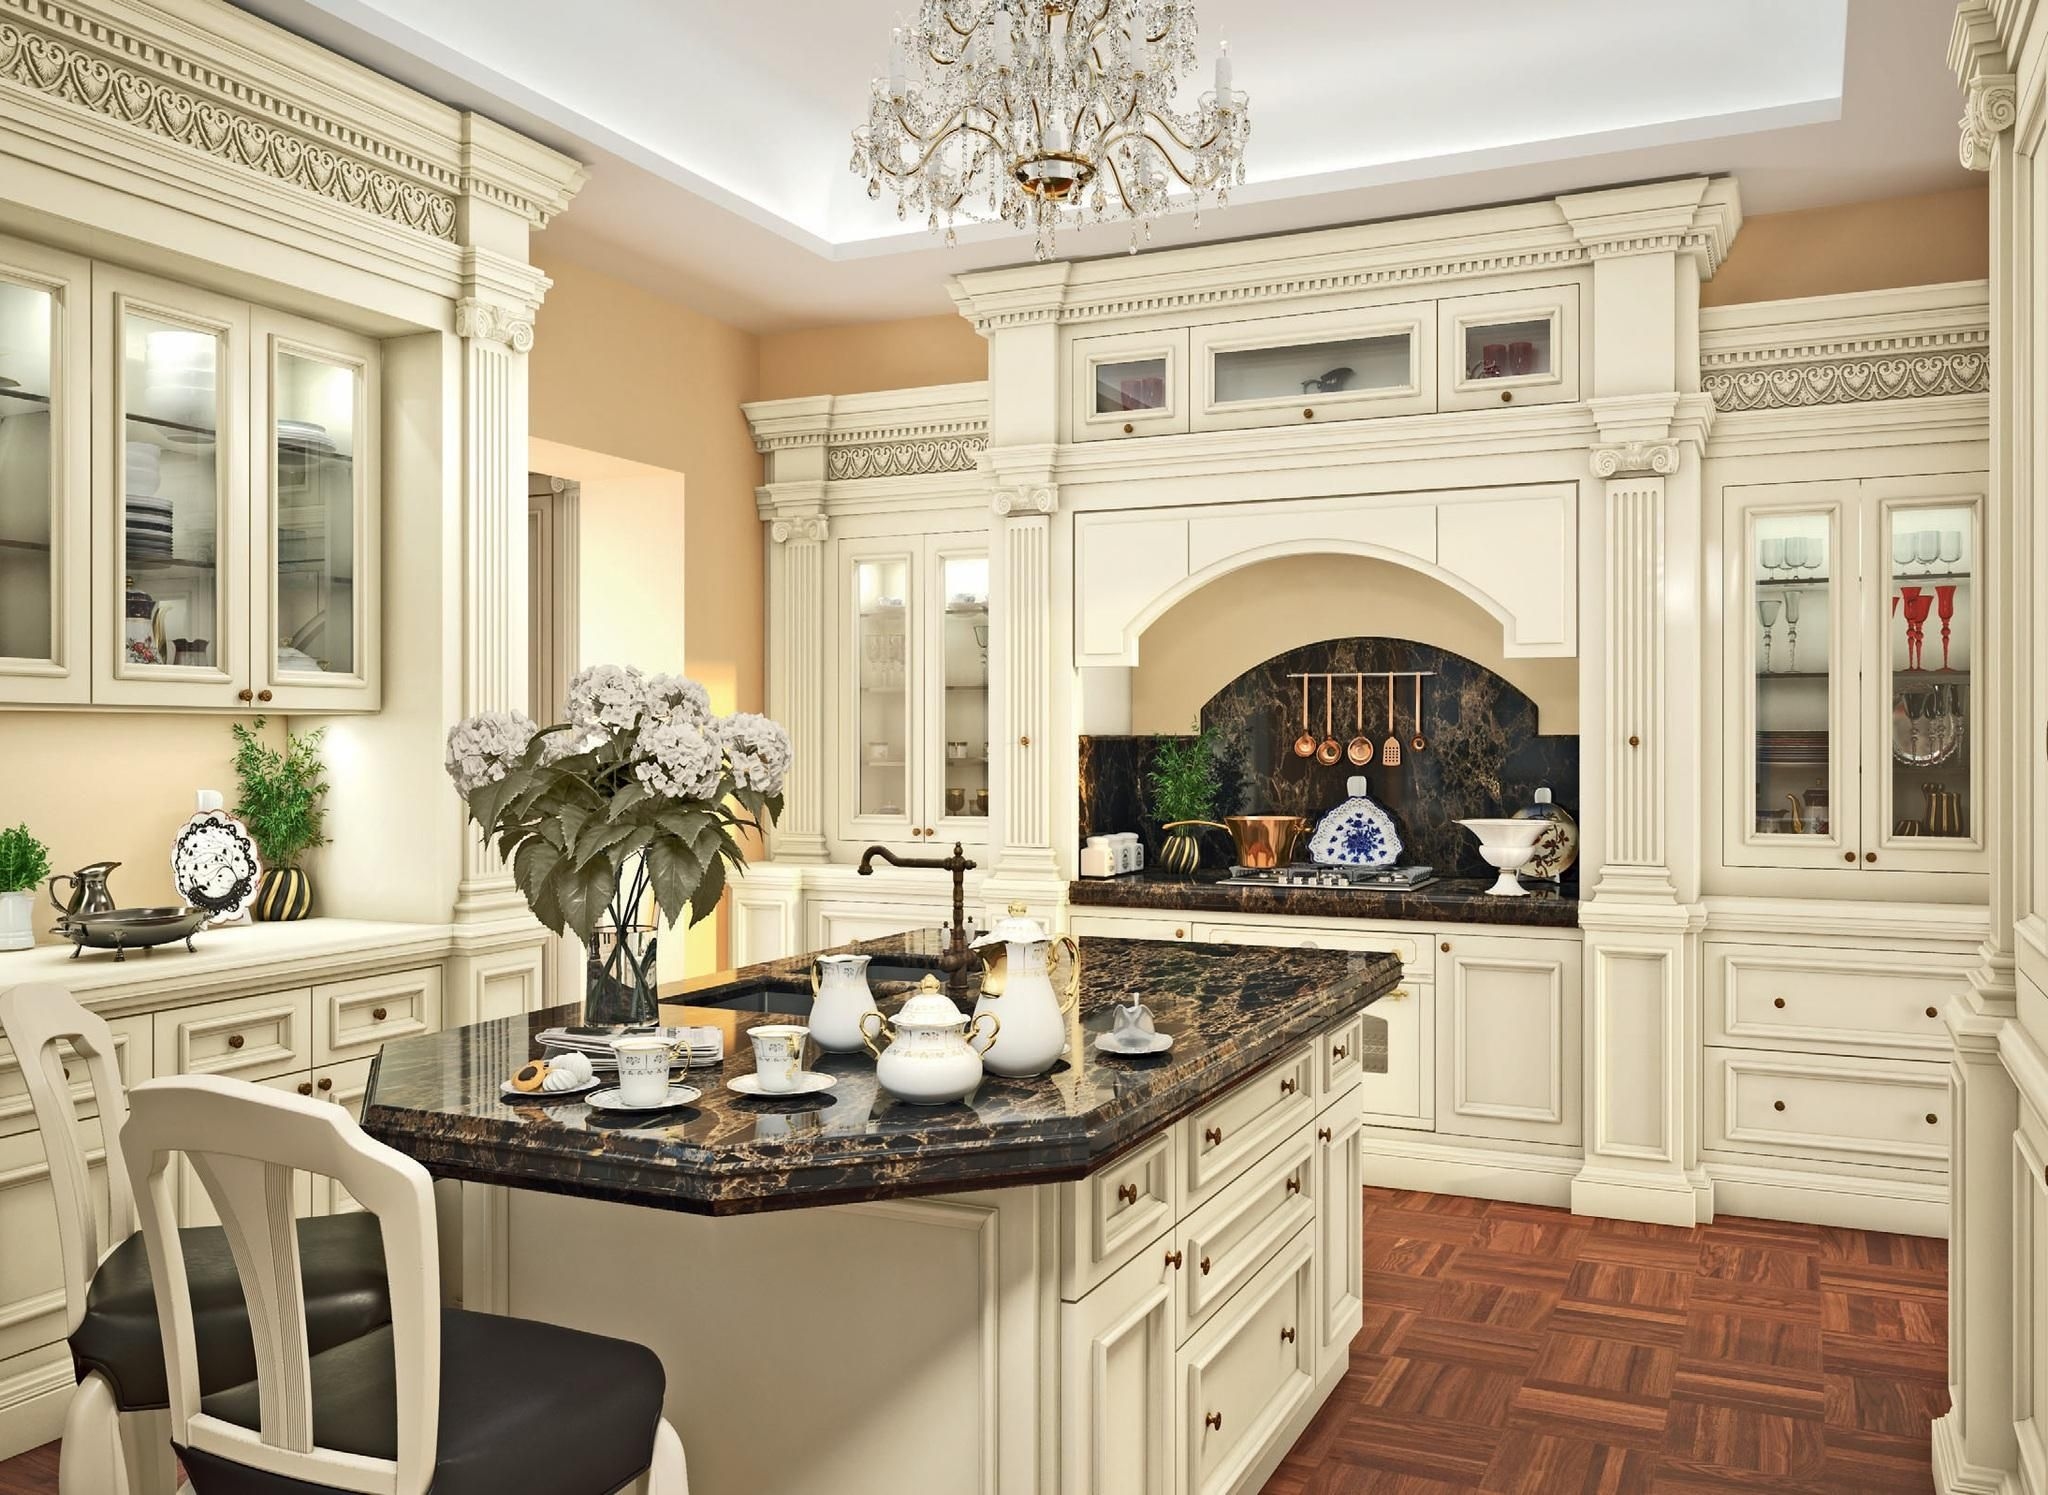 Classic Kitchen Design With Fancy Crystal Chandelier Above Kitche